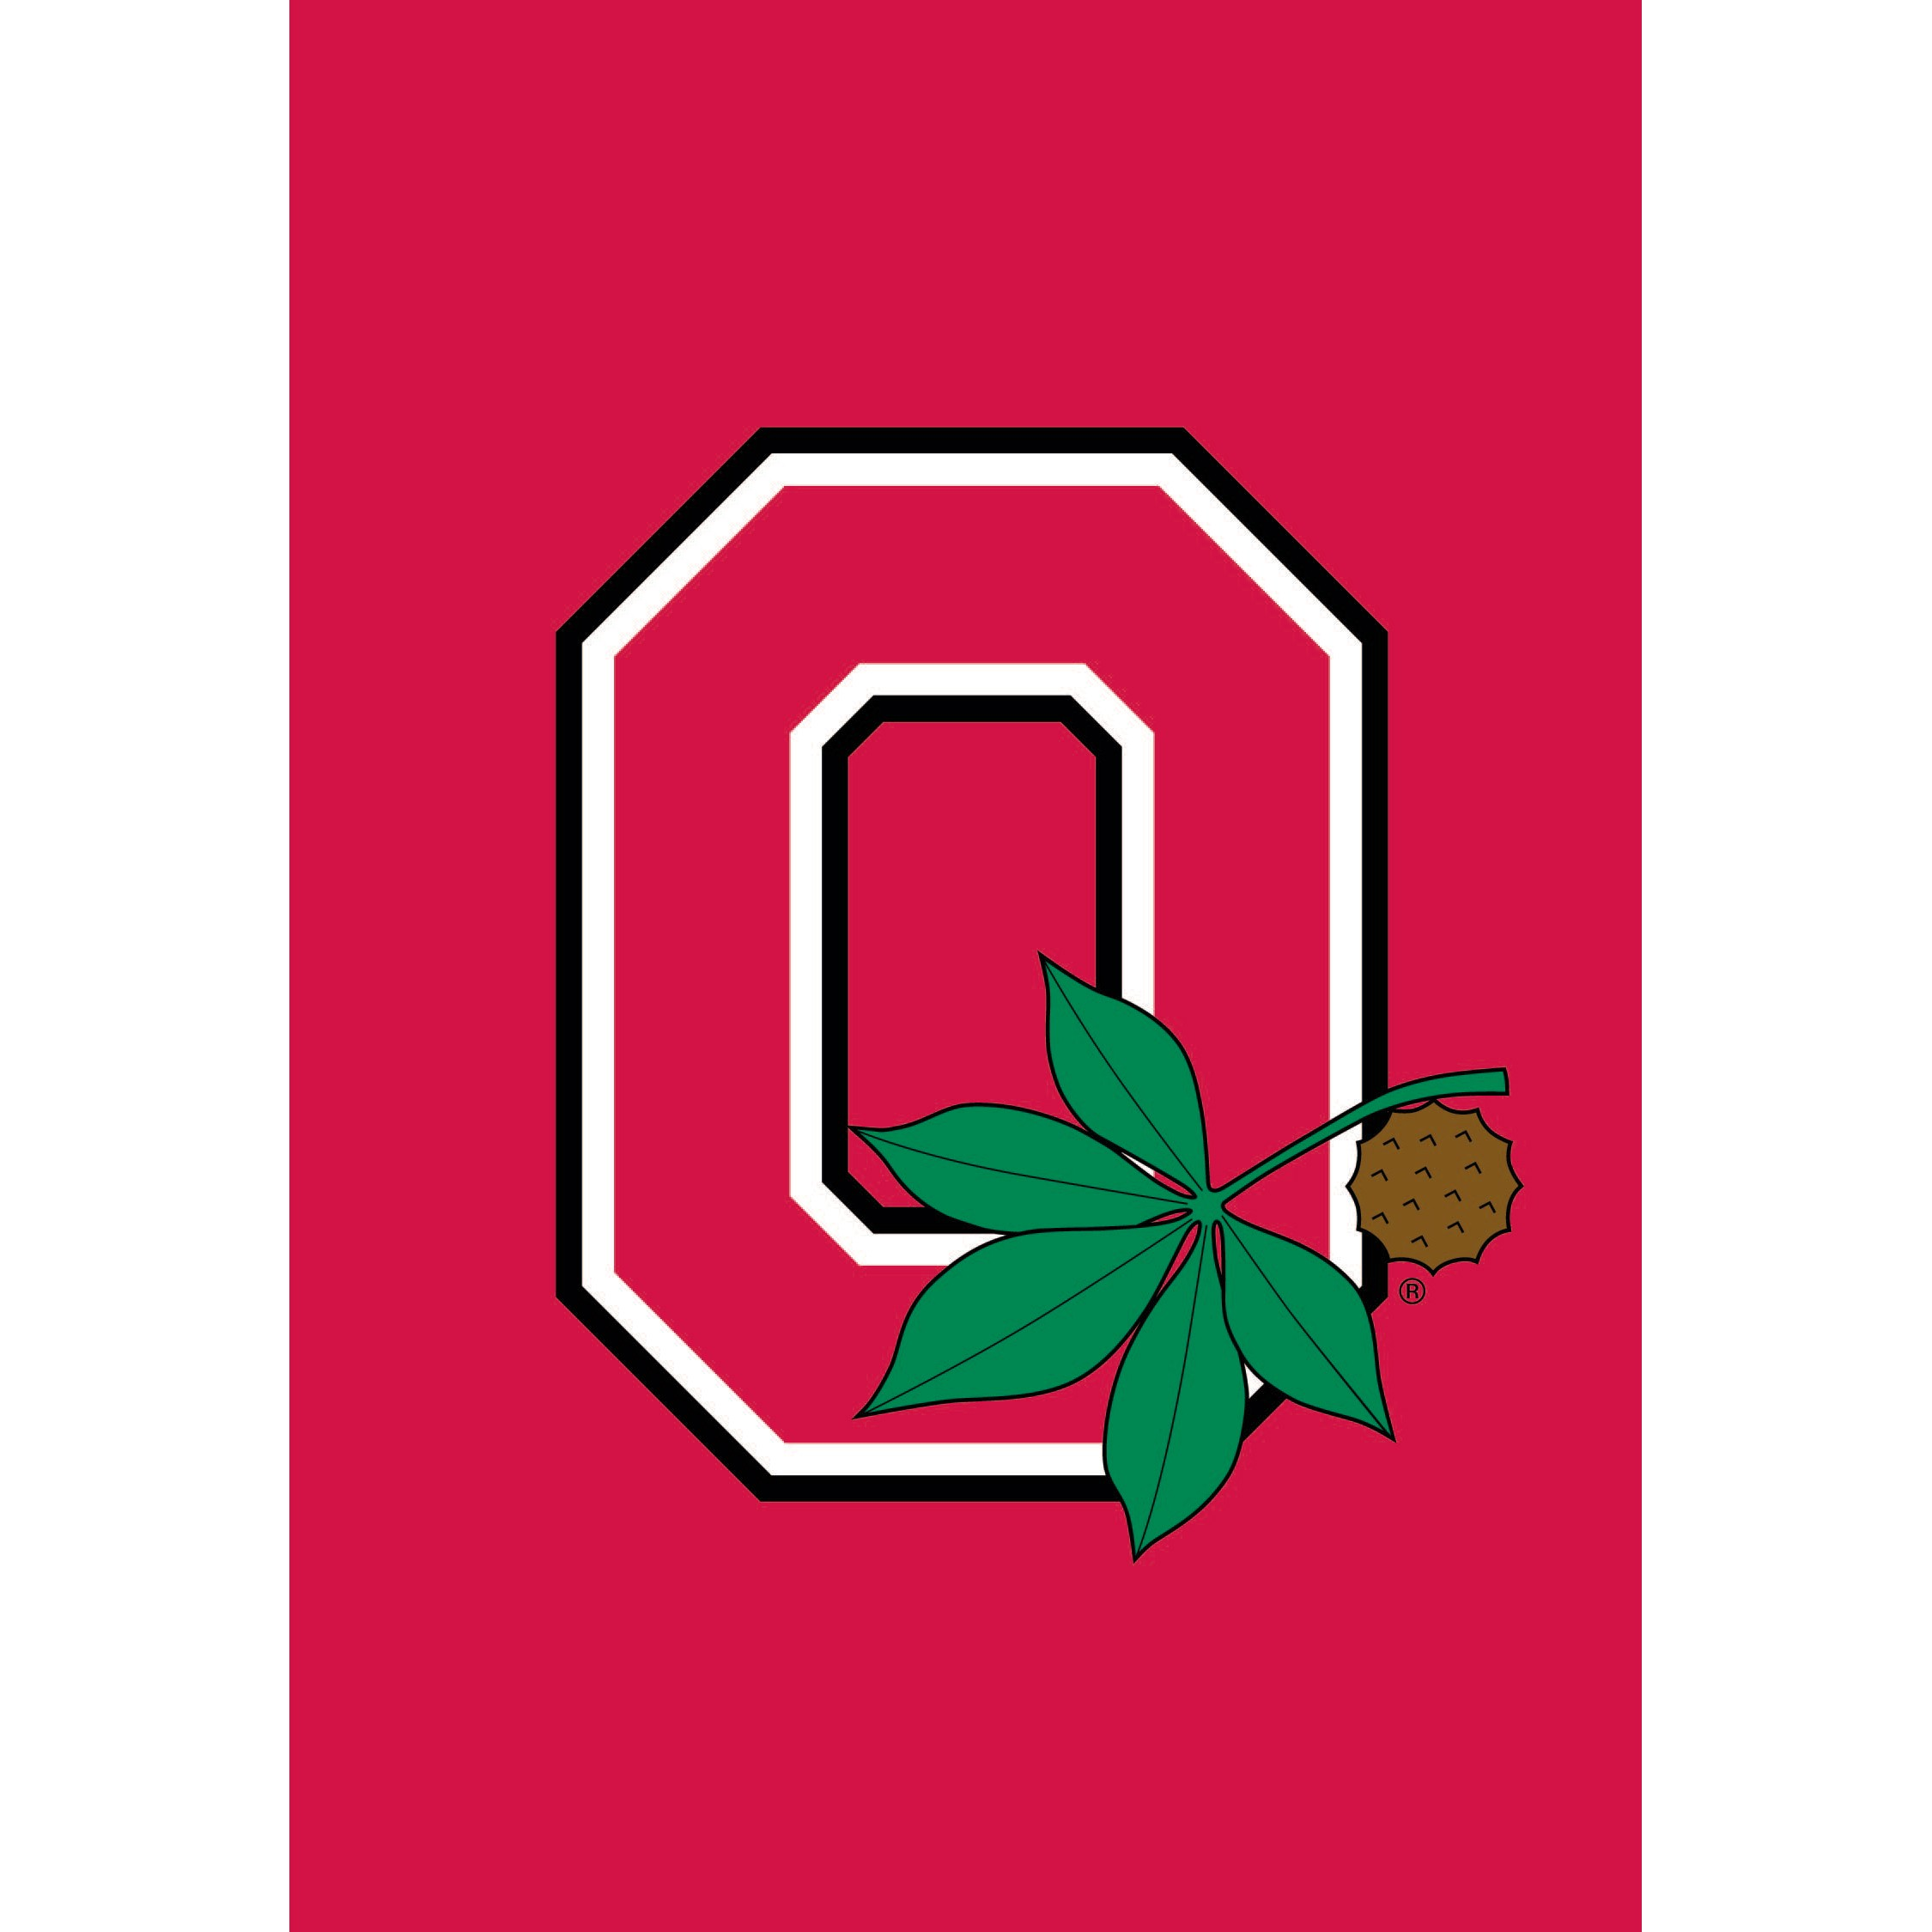 Ohio state buckeyes logo clip art picture transparent Free ohio state buckeyes clipart - ClipartFest picture transparent